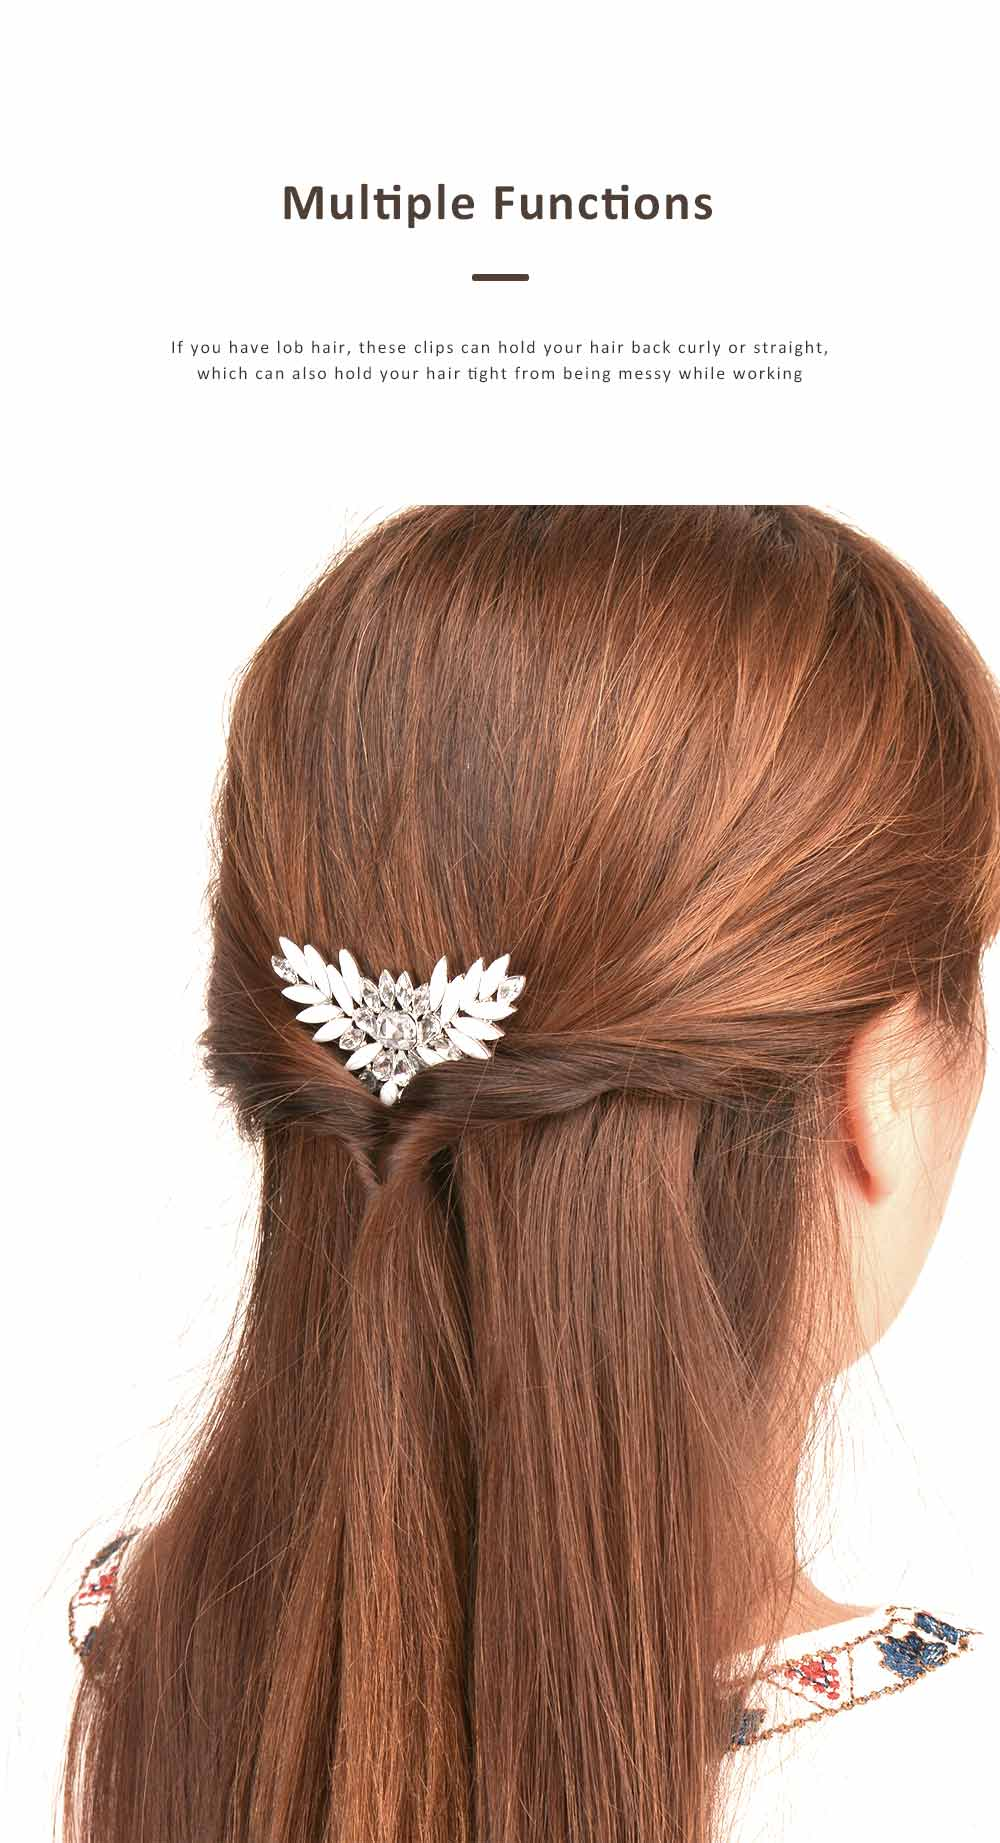 Chic Diamond Alloy Hair Clip Stylish Hair Pin for Women Girls Suitable for Different Hair Styles 5